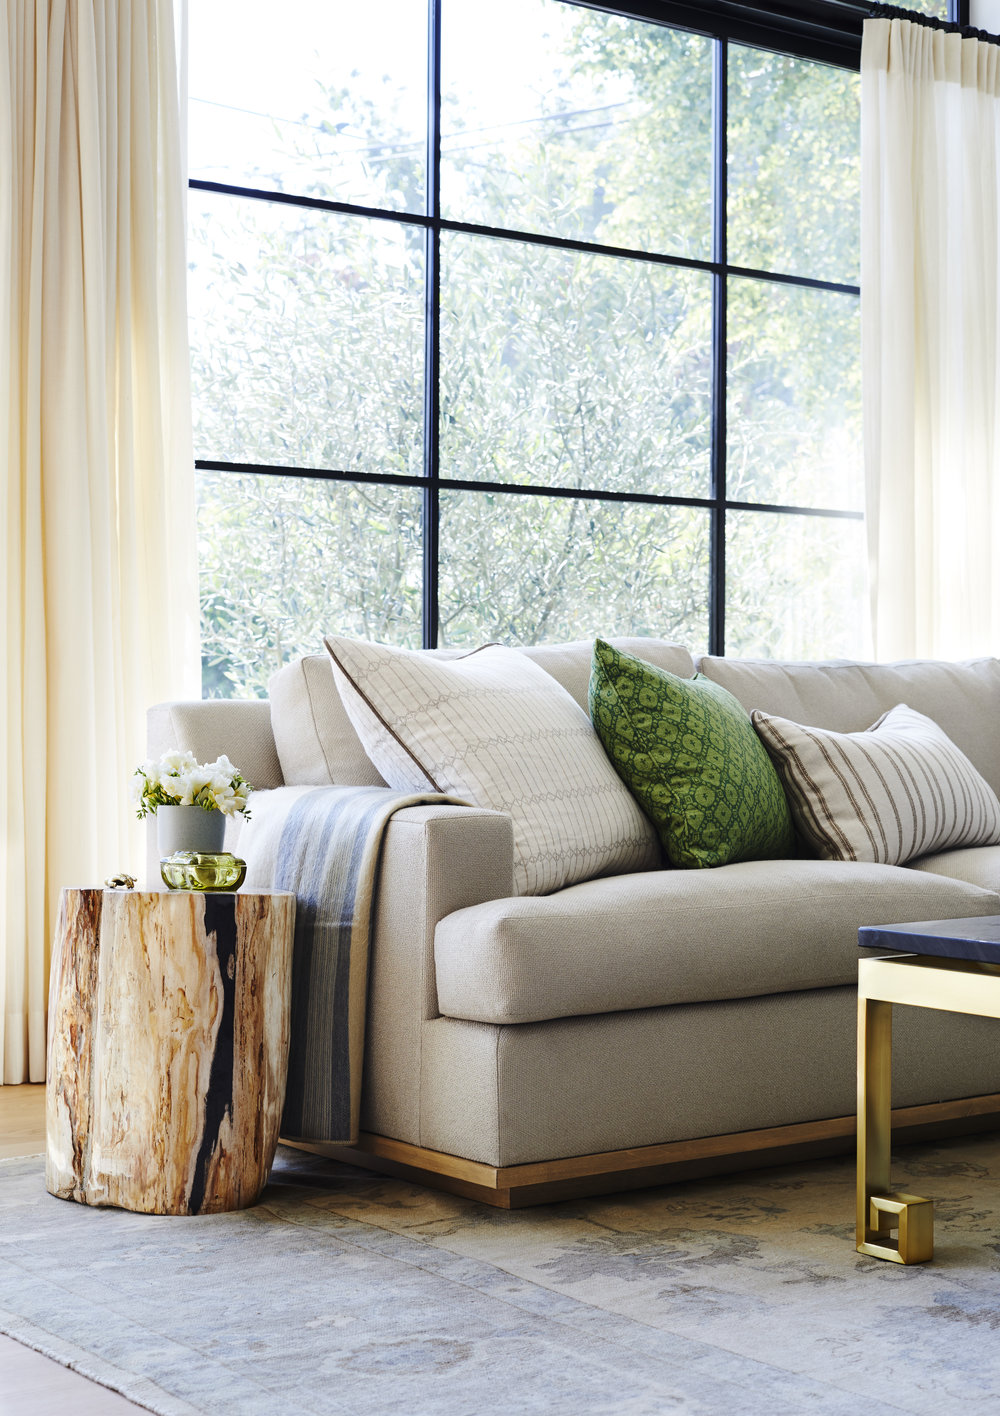 Barta Interiors - The Barta Sofa.jpg